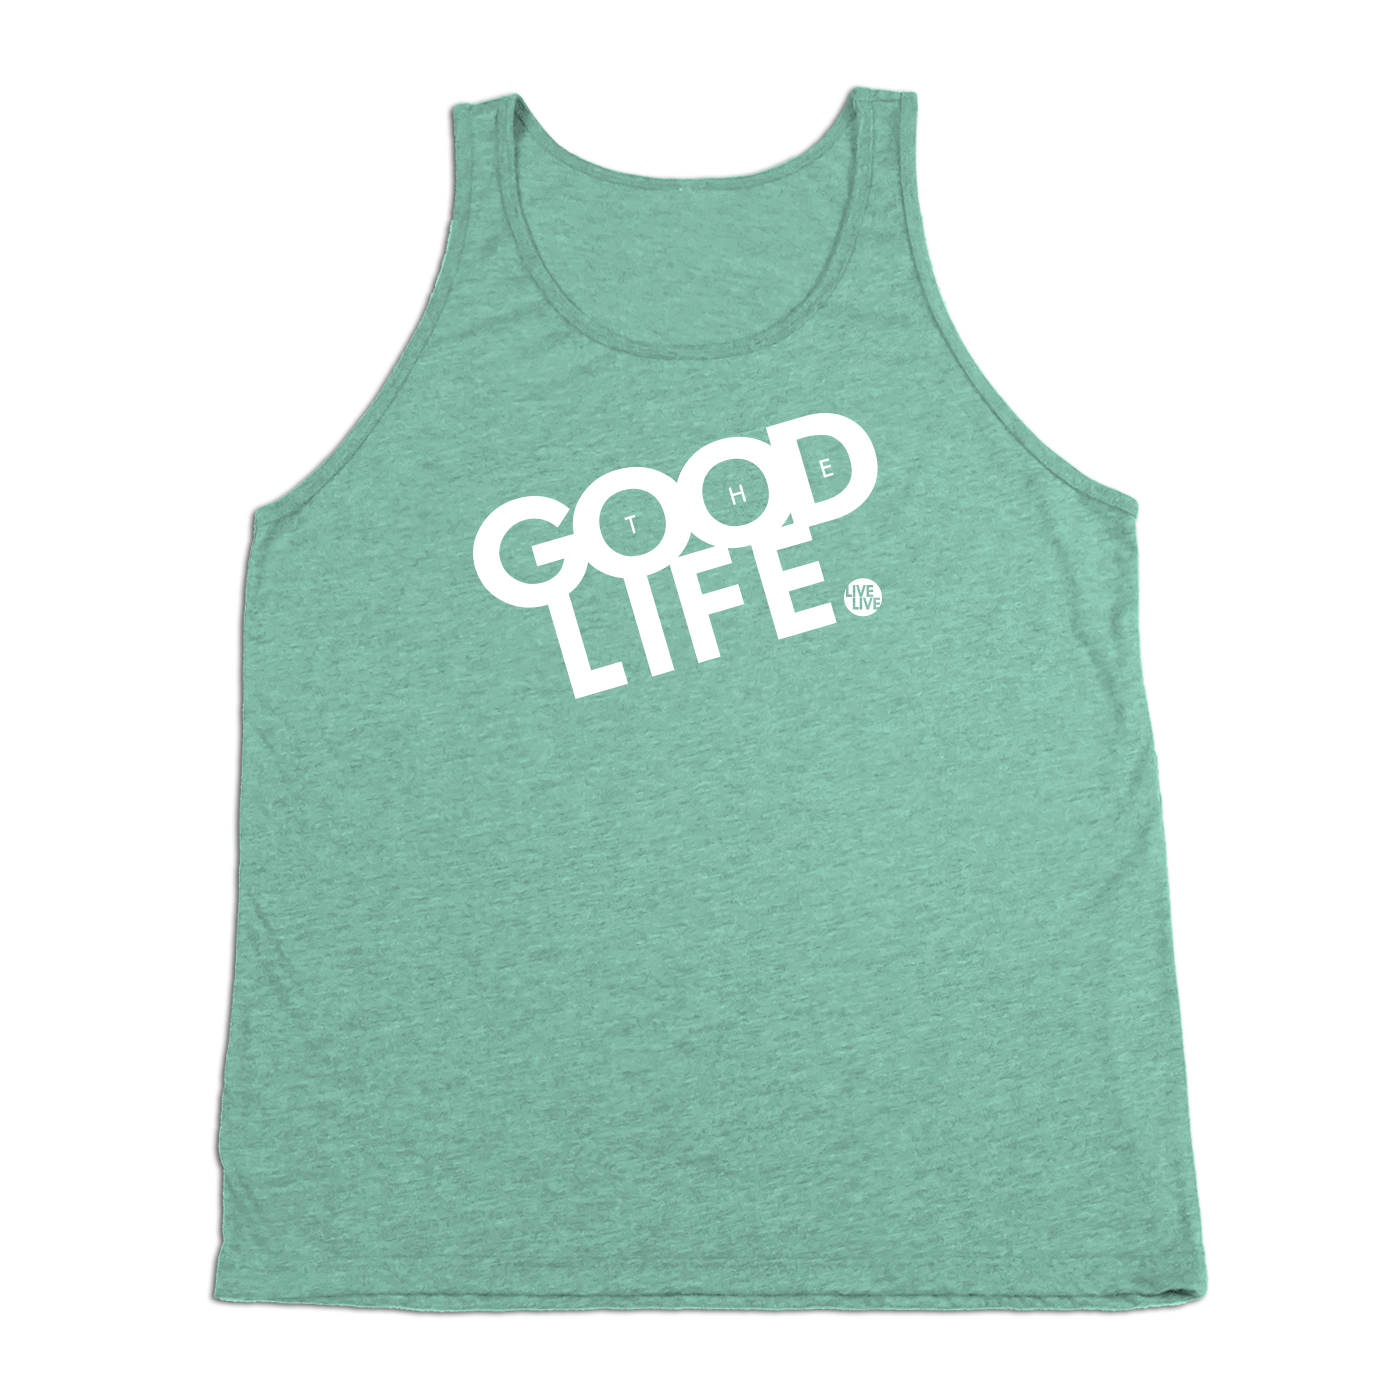 #THEGOODLIFE Tank Top - White - Hat Mount for GoPro